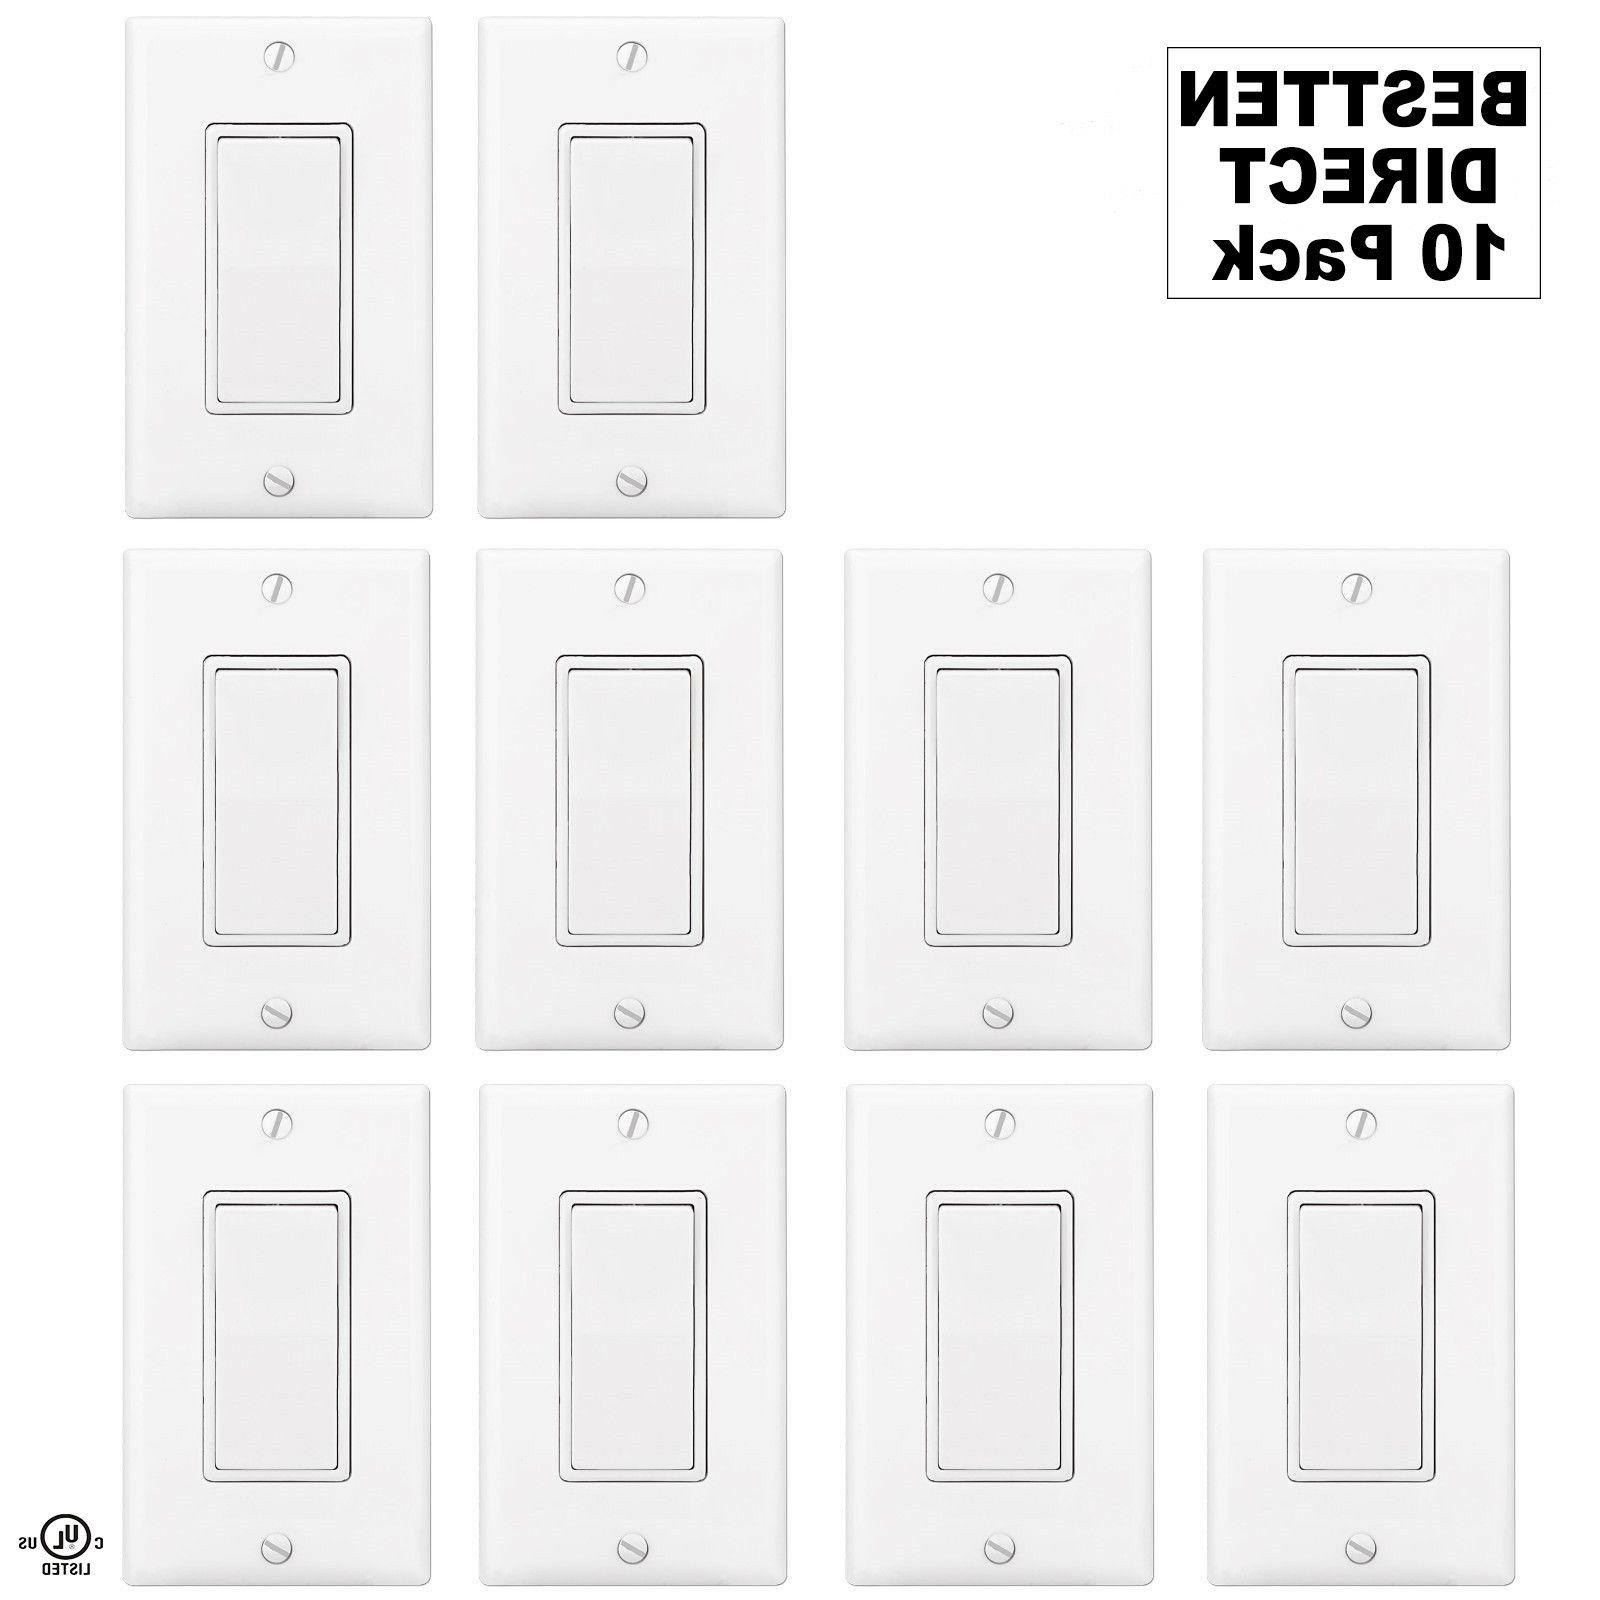 bestten wall light switch interrupter   decor